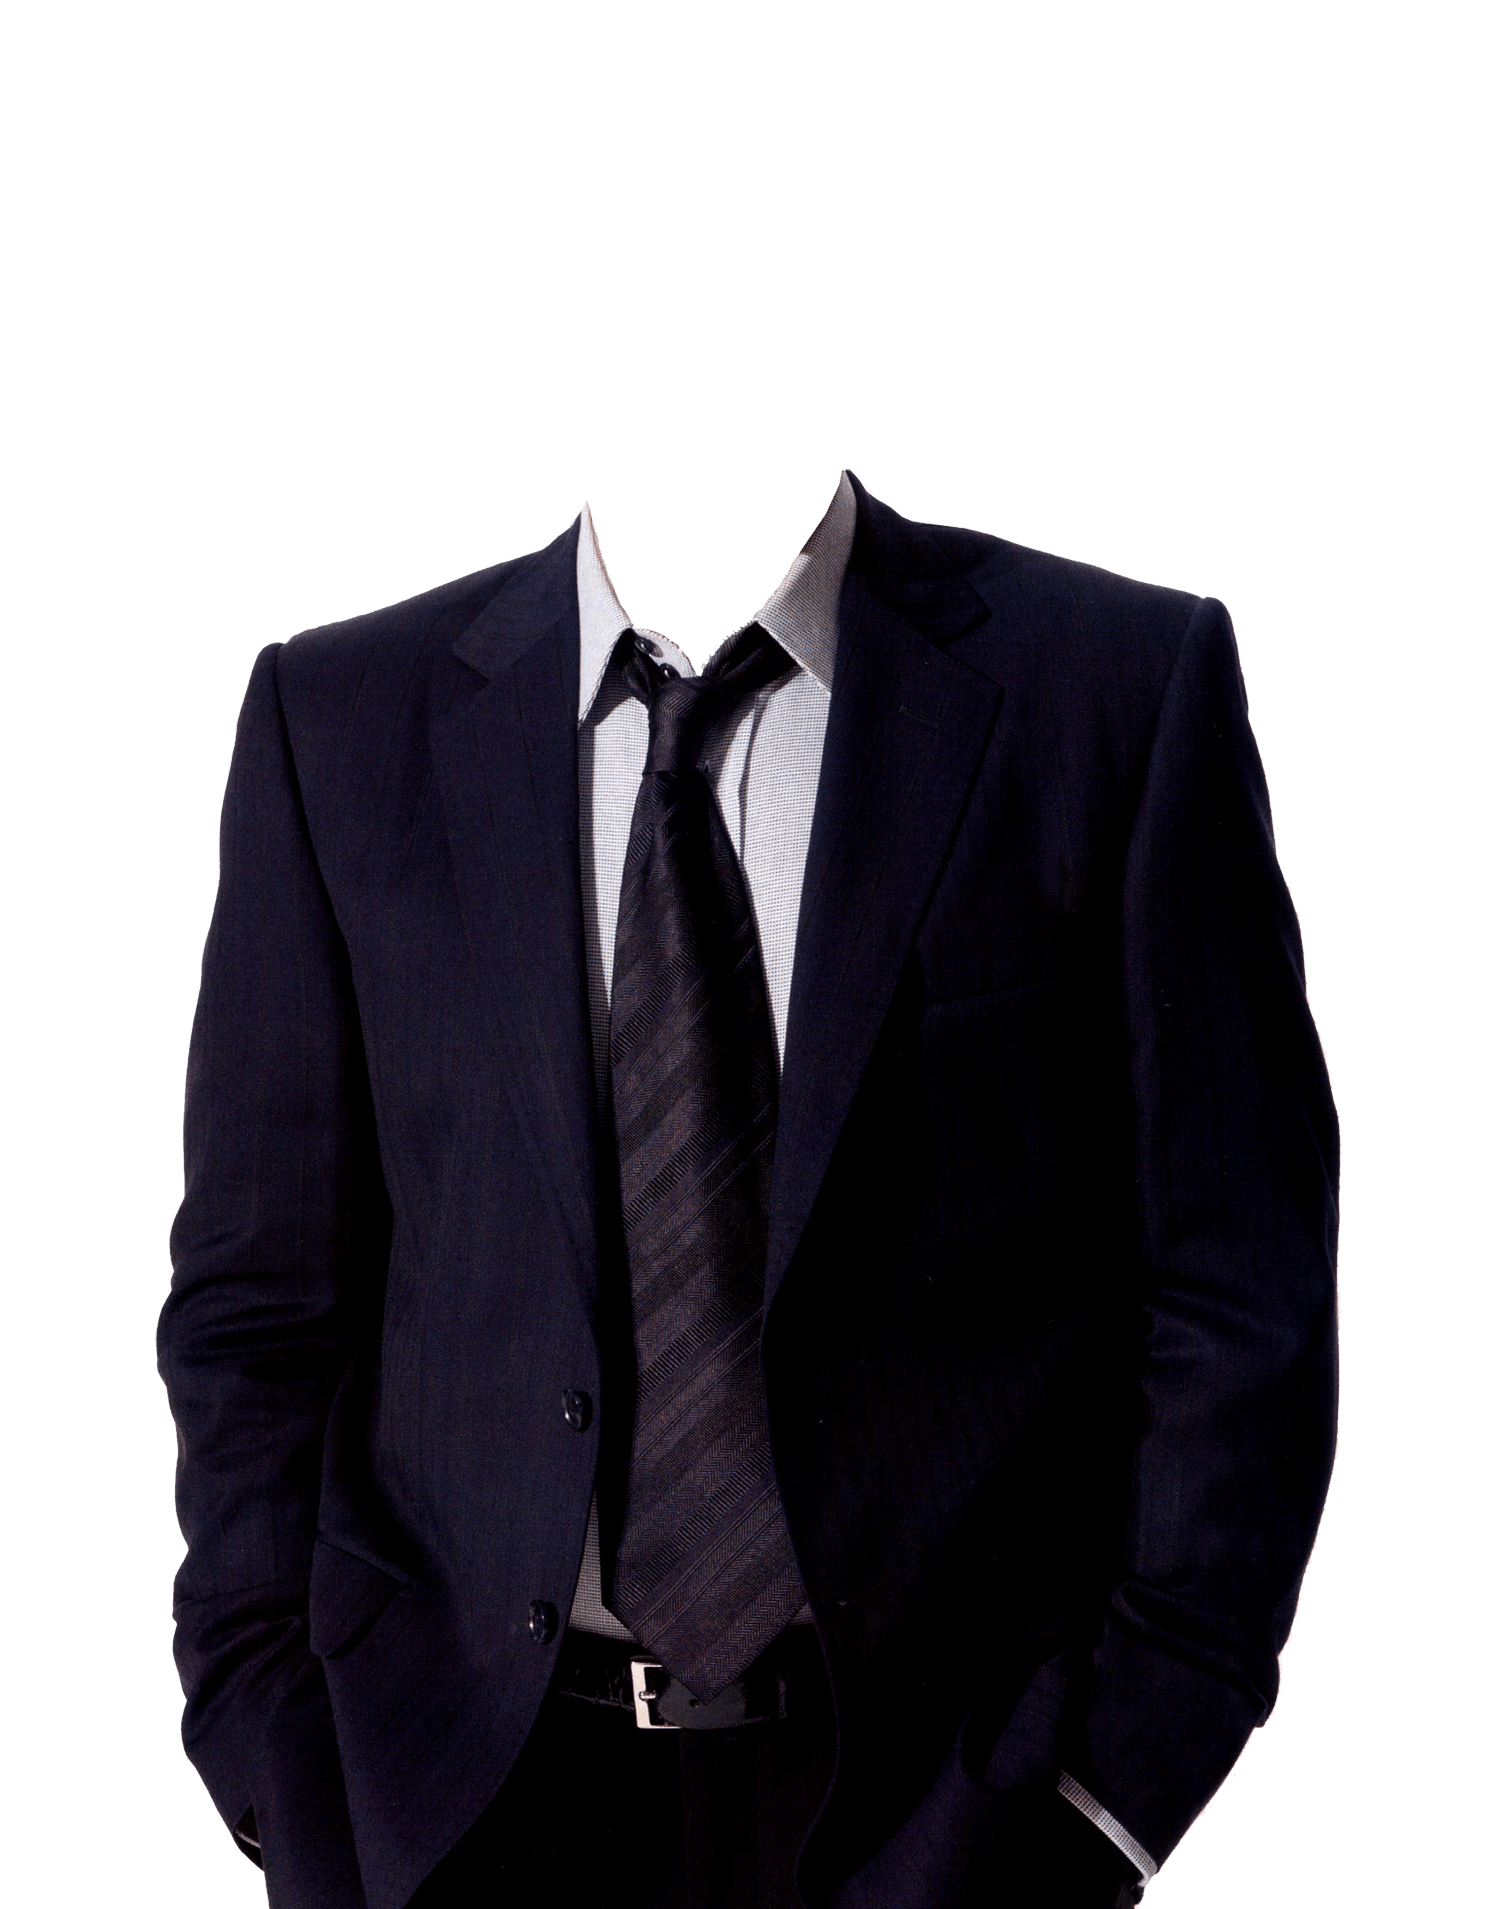 download suit png image png image pngimg #12441